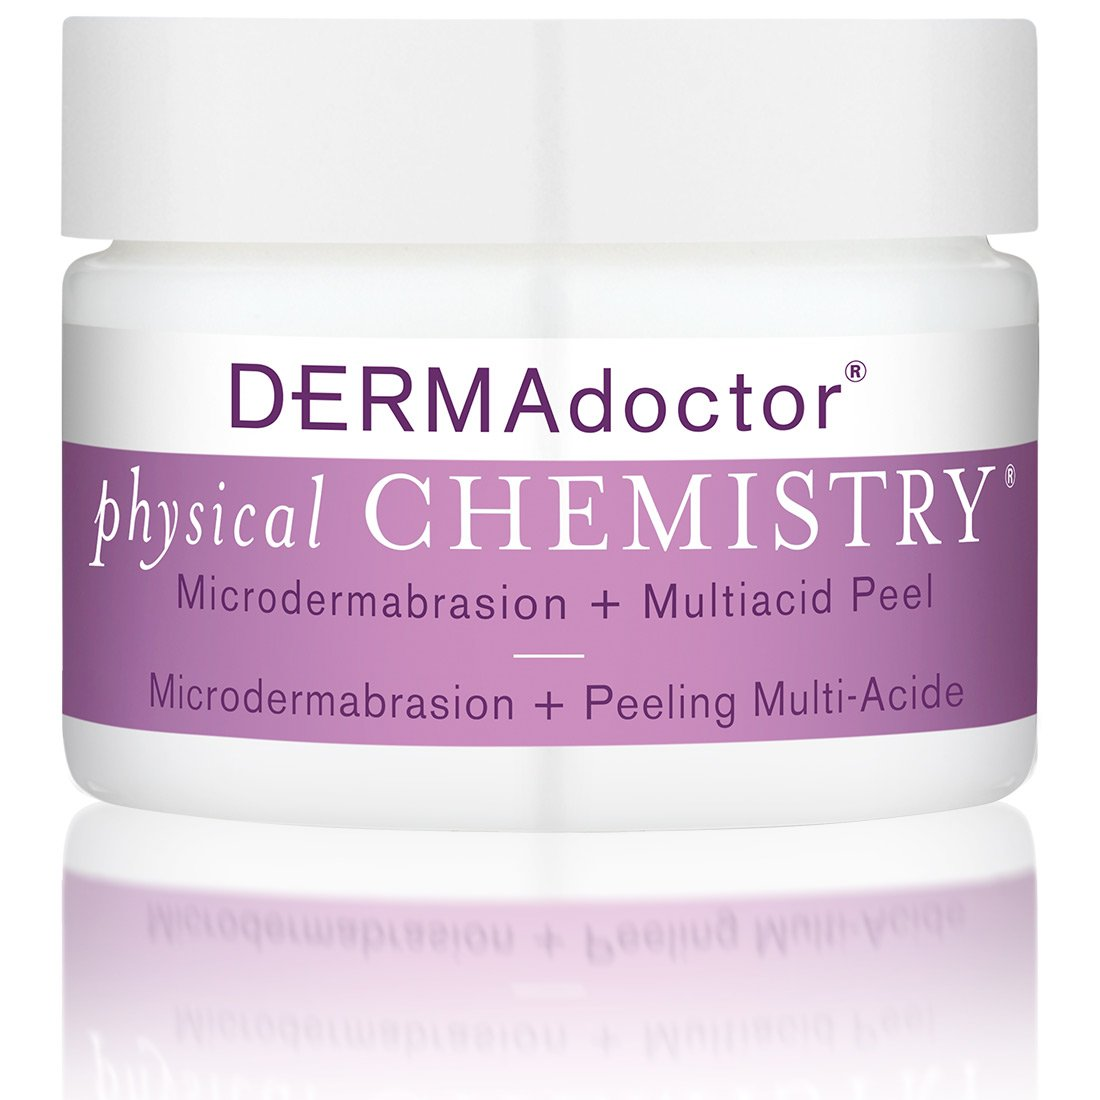 Dermadoctor Physical Chemistry Microdermabrasion Plus MultiAcid Chemical Peel, 1.7 Oz Fab Products